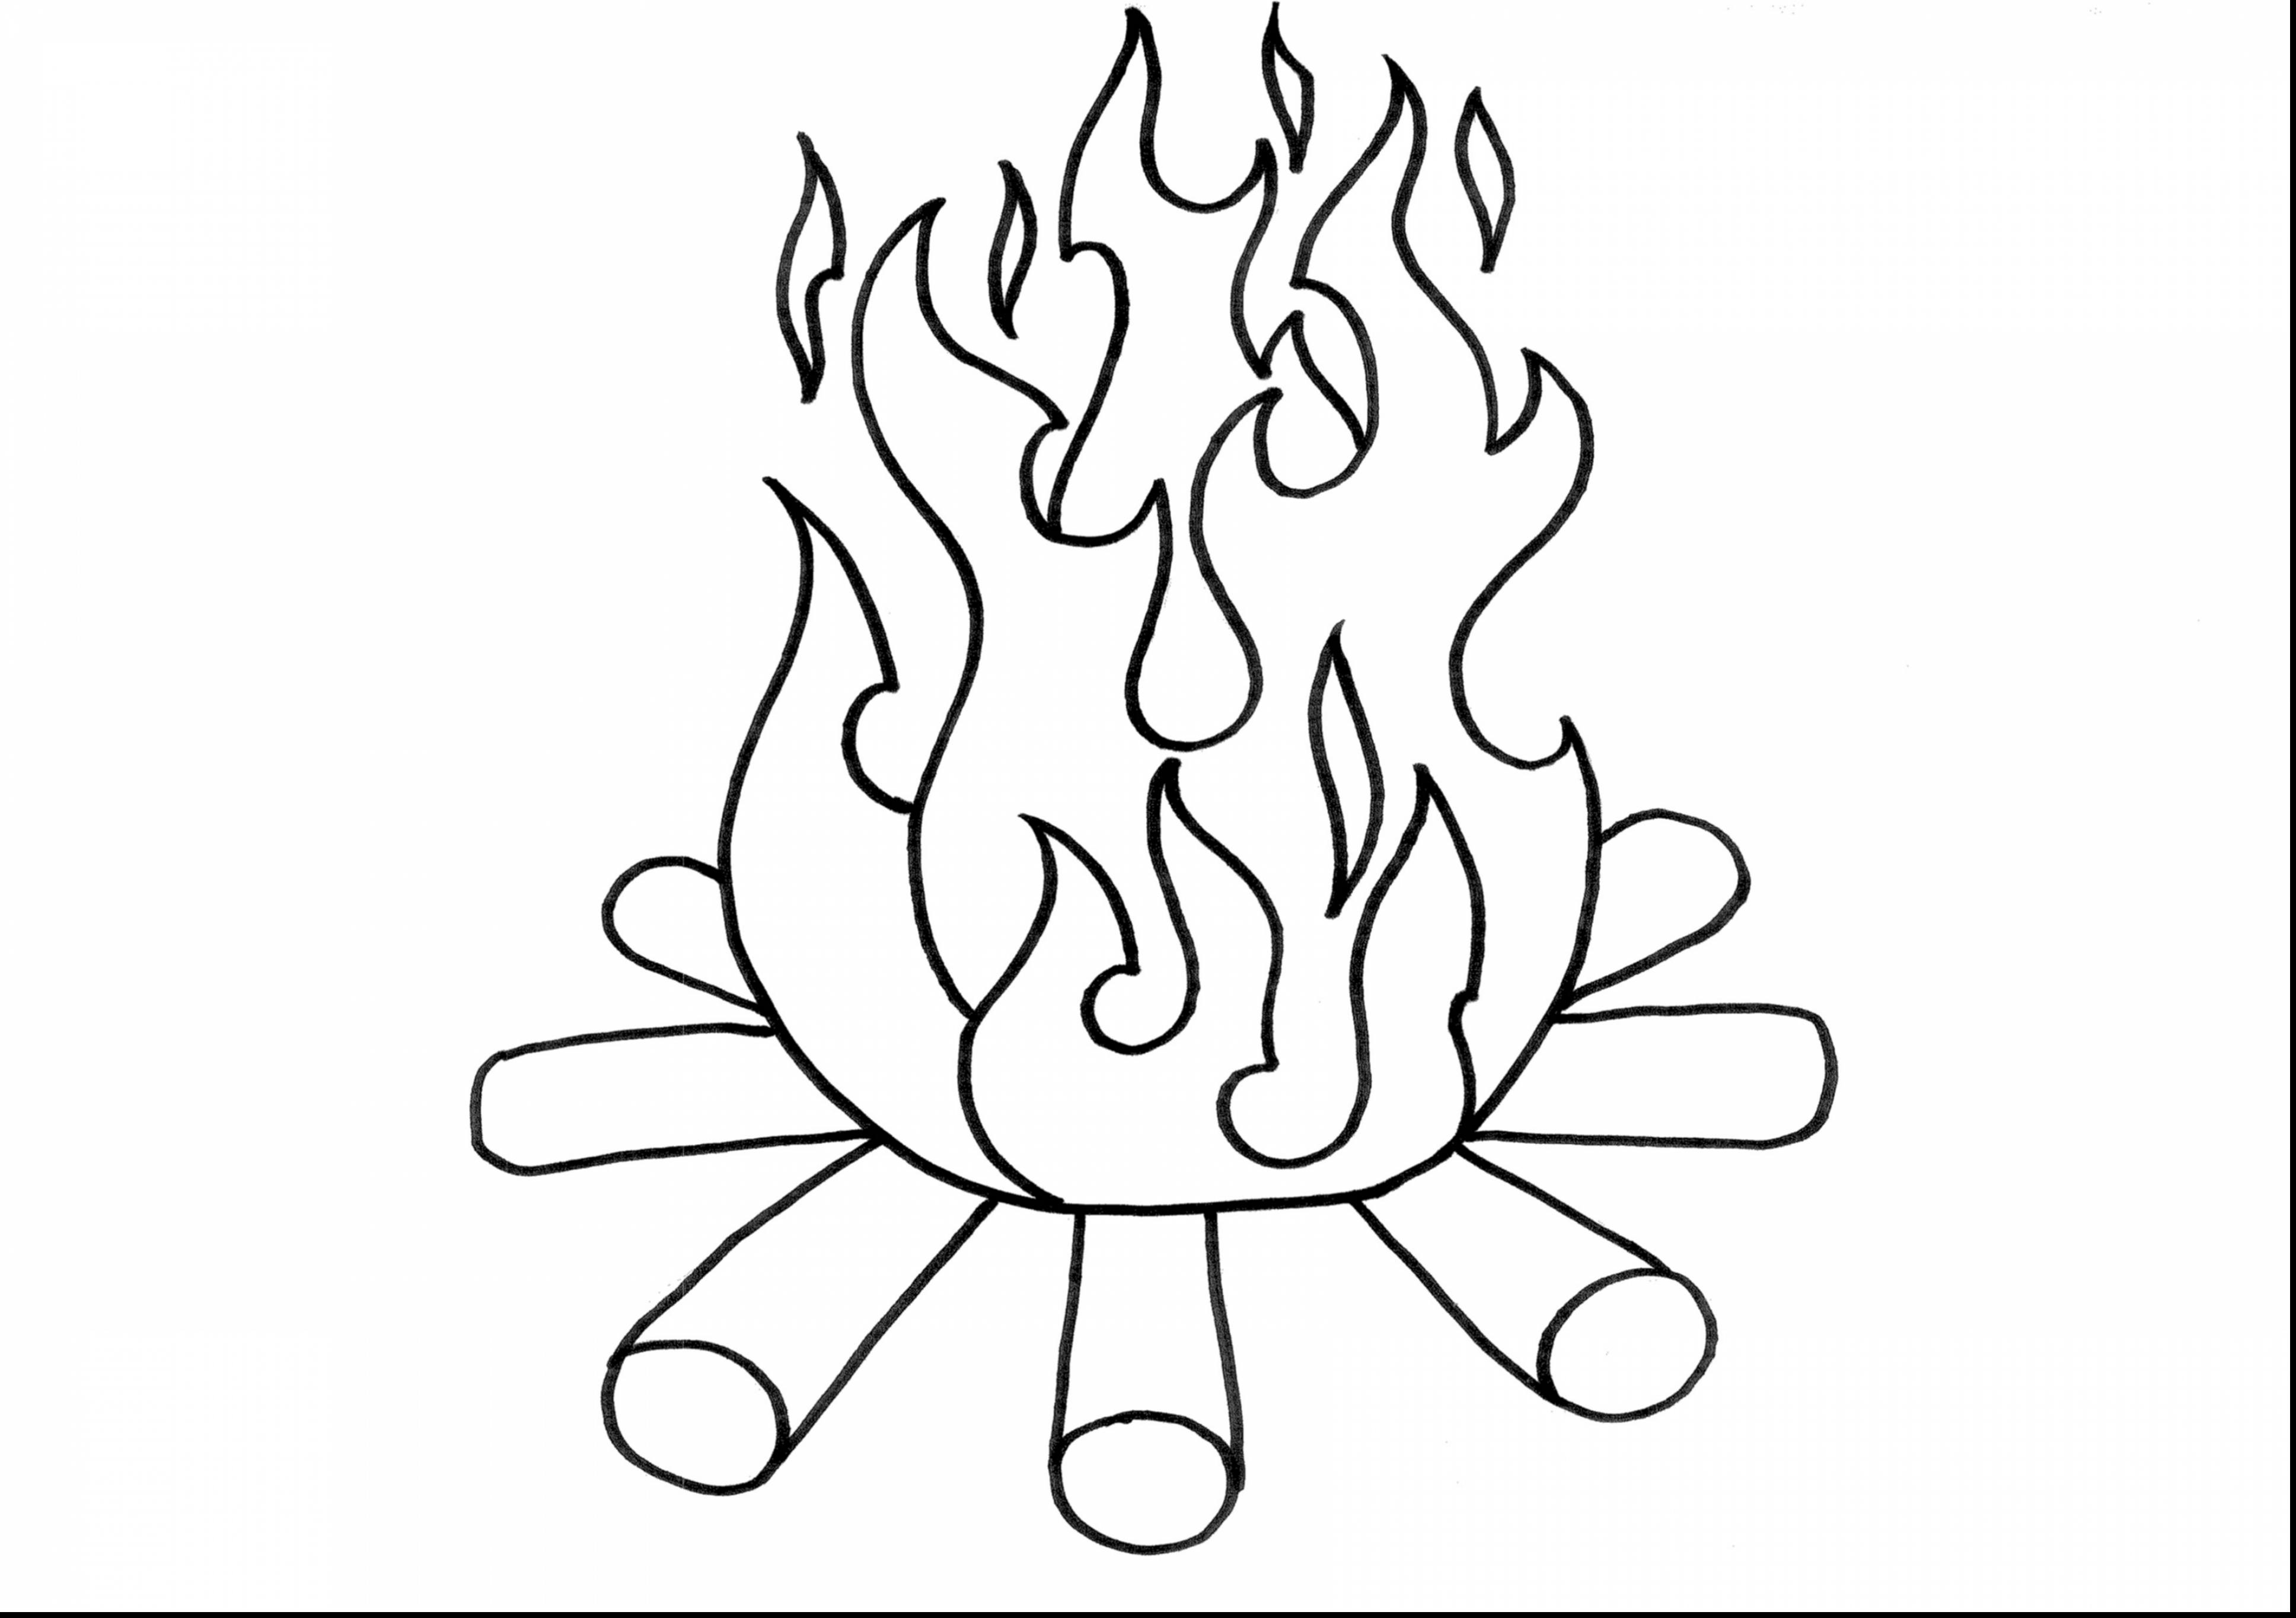 3872x2728 Fire Coloring Pages Truck Color Tryonshorts Free Online With Flame